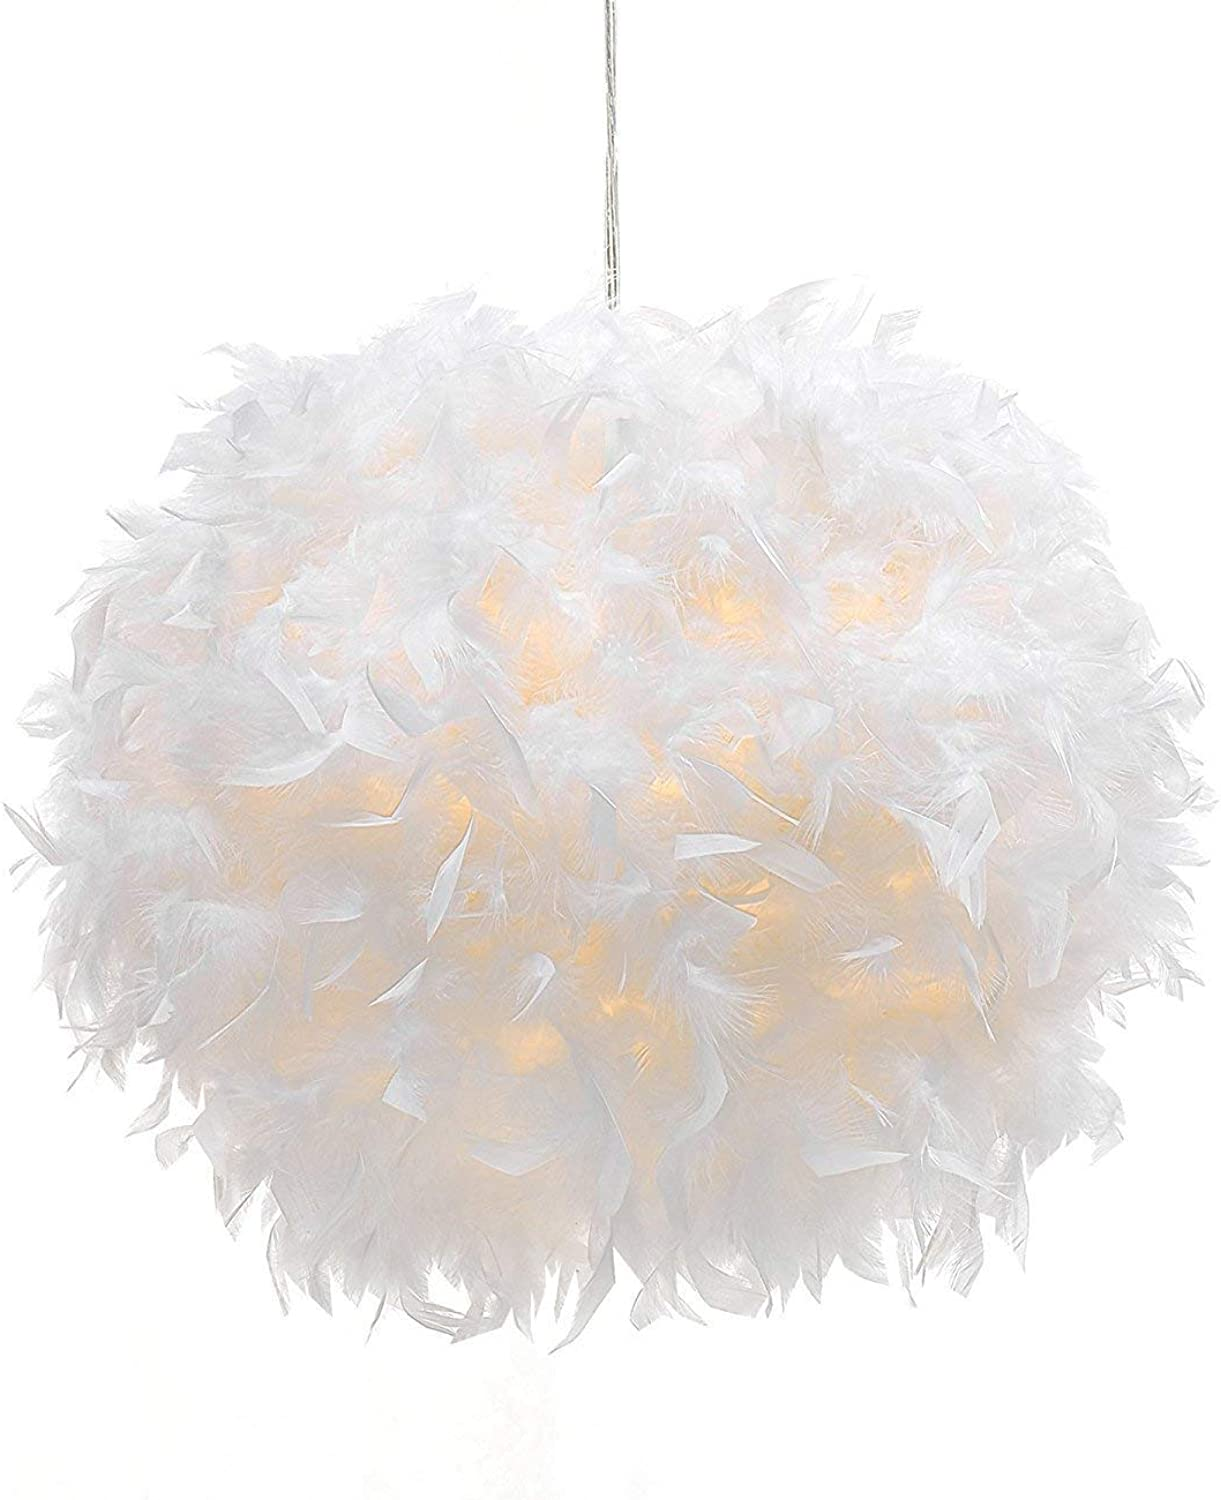 Waneway White Feather Ceiling Pendant Light Shade, Non-Electrical Lampshade for Floor Lamp and Table Lamp with Shade Reducing Ring for Living Room, Dining Room, and Bedroom, 15.7 inches